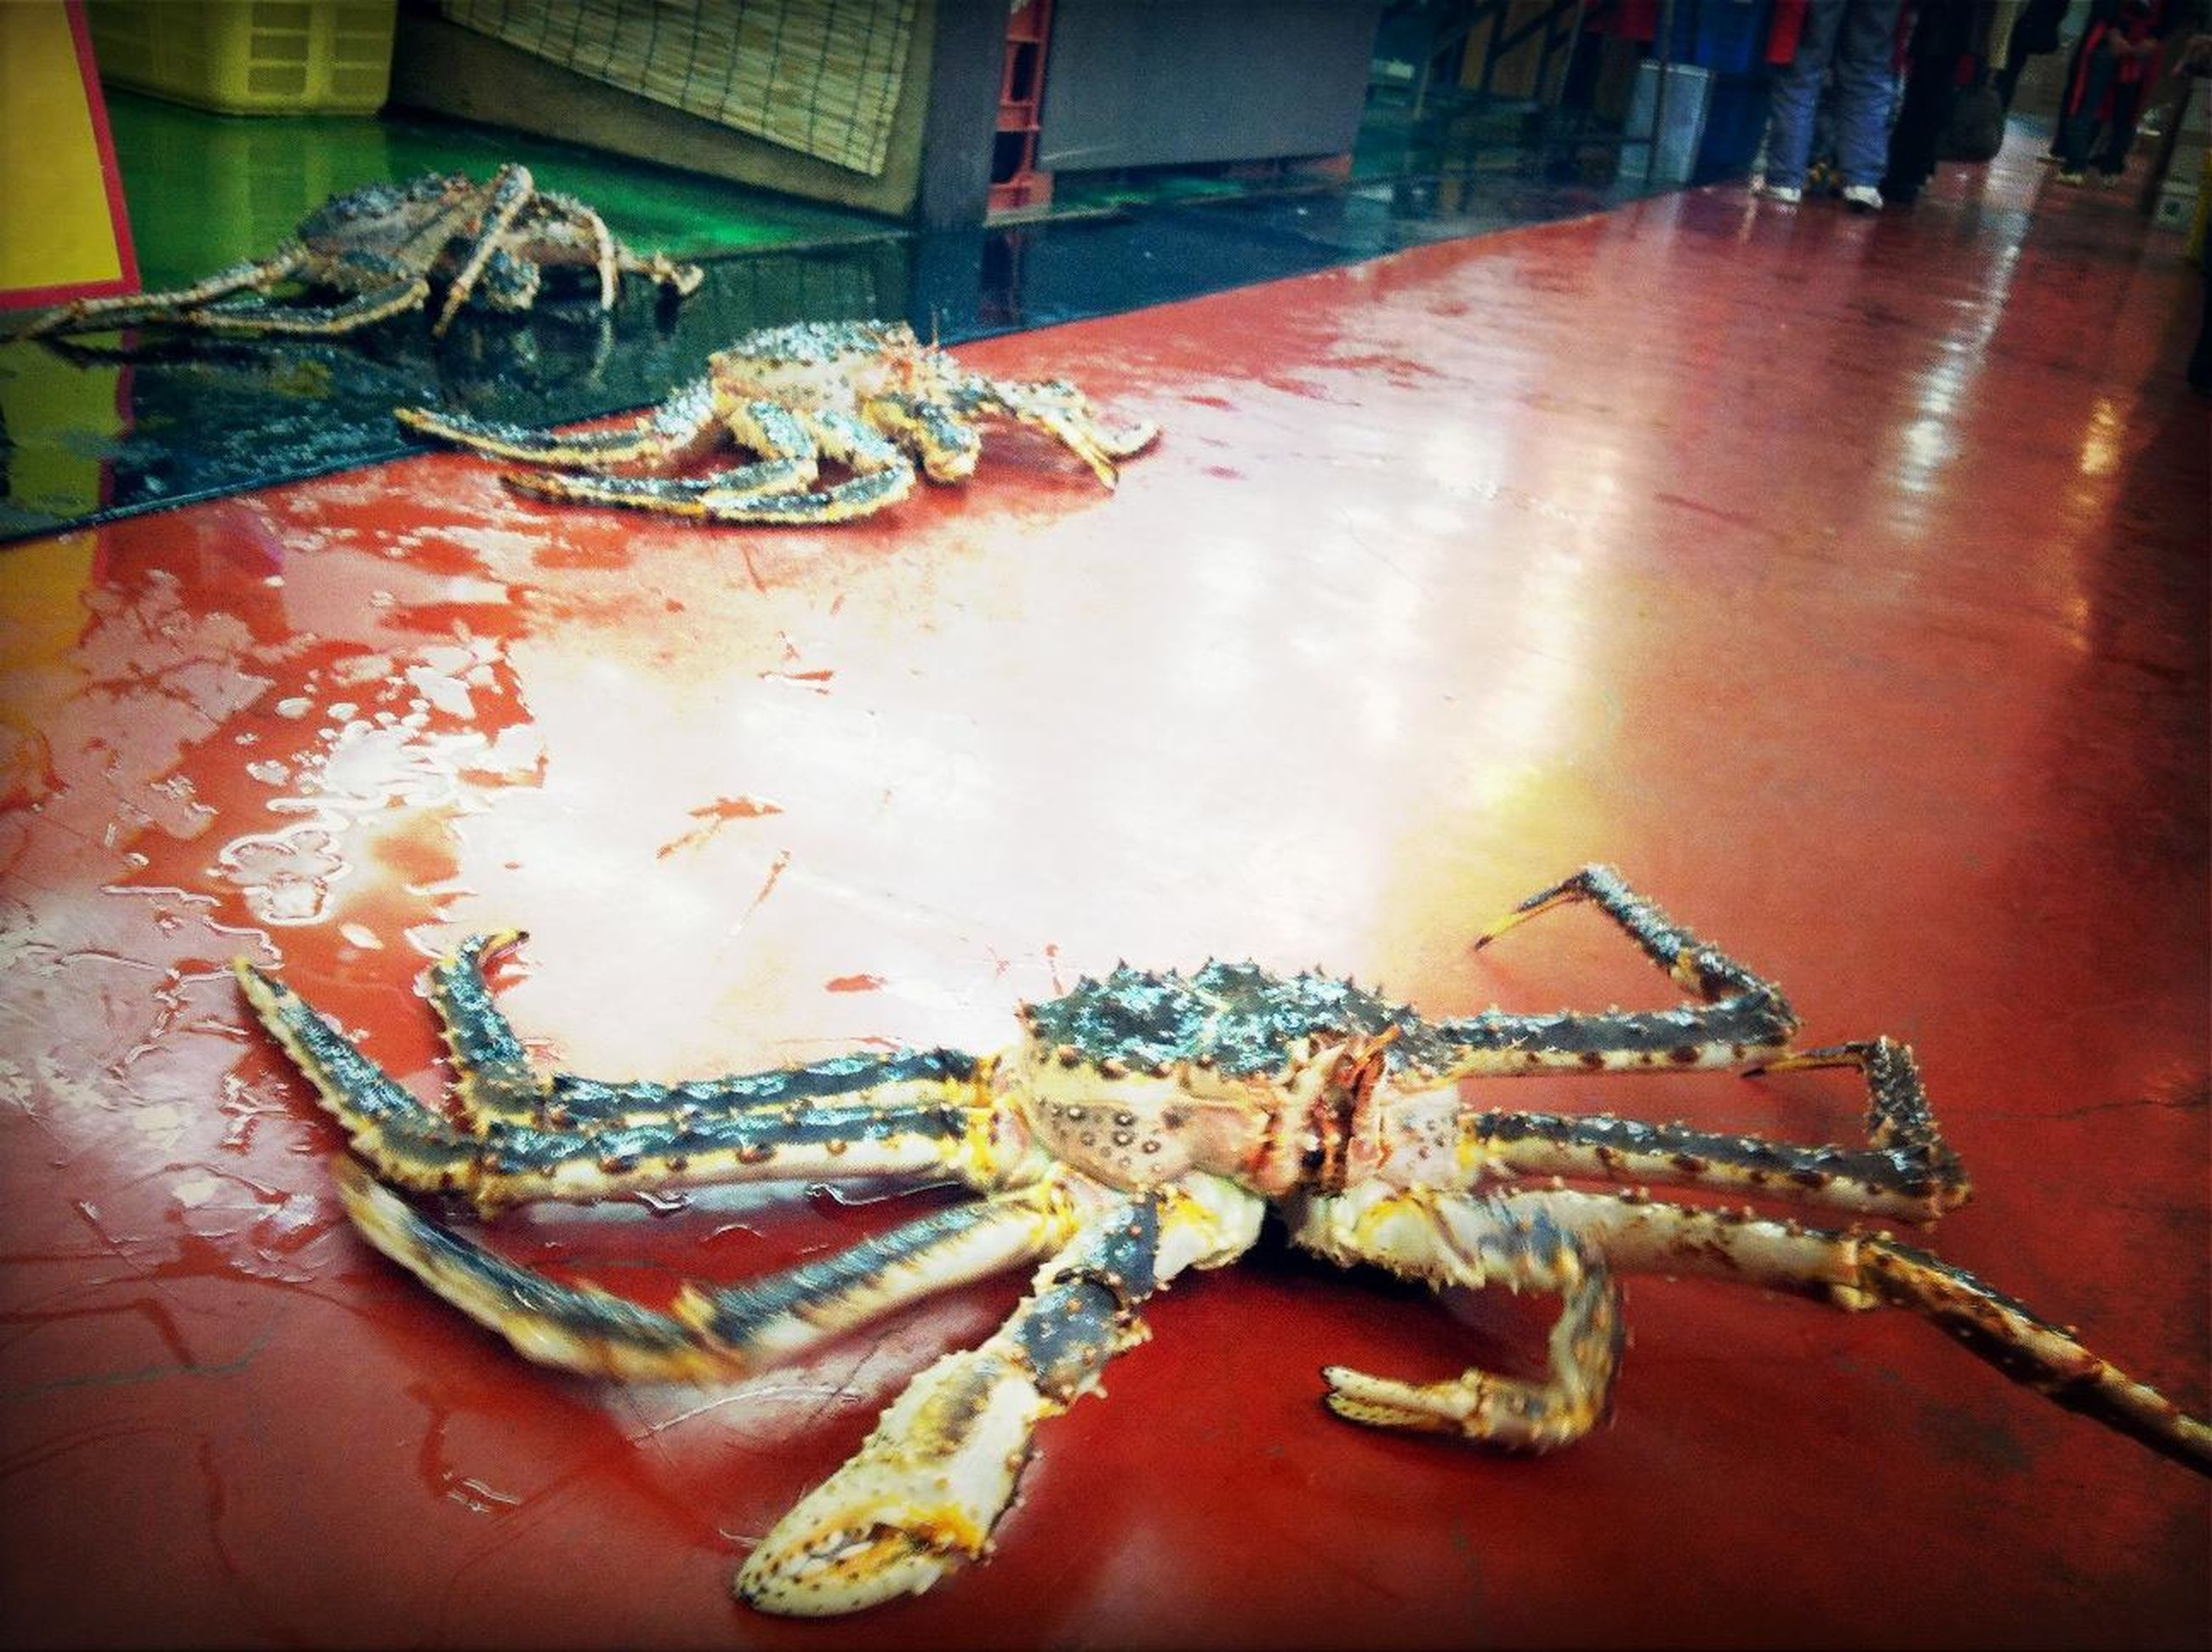 indoors, seafood, animal themes, high angle view, close-up, fish, dead animal, table, still life, food, no people, food and drink, one animal, crab, healthy eating, day, fishing industry, plate, wildlife, wood - material